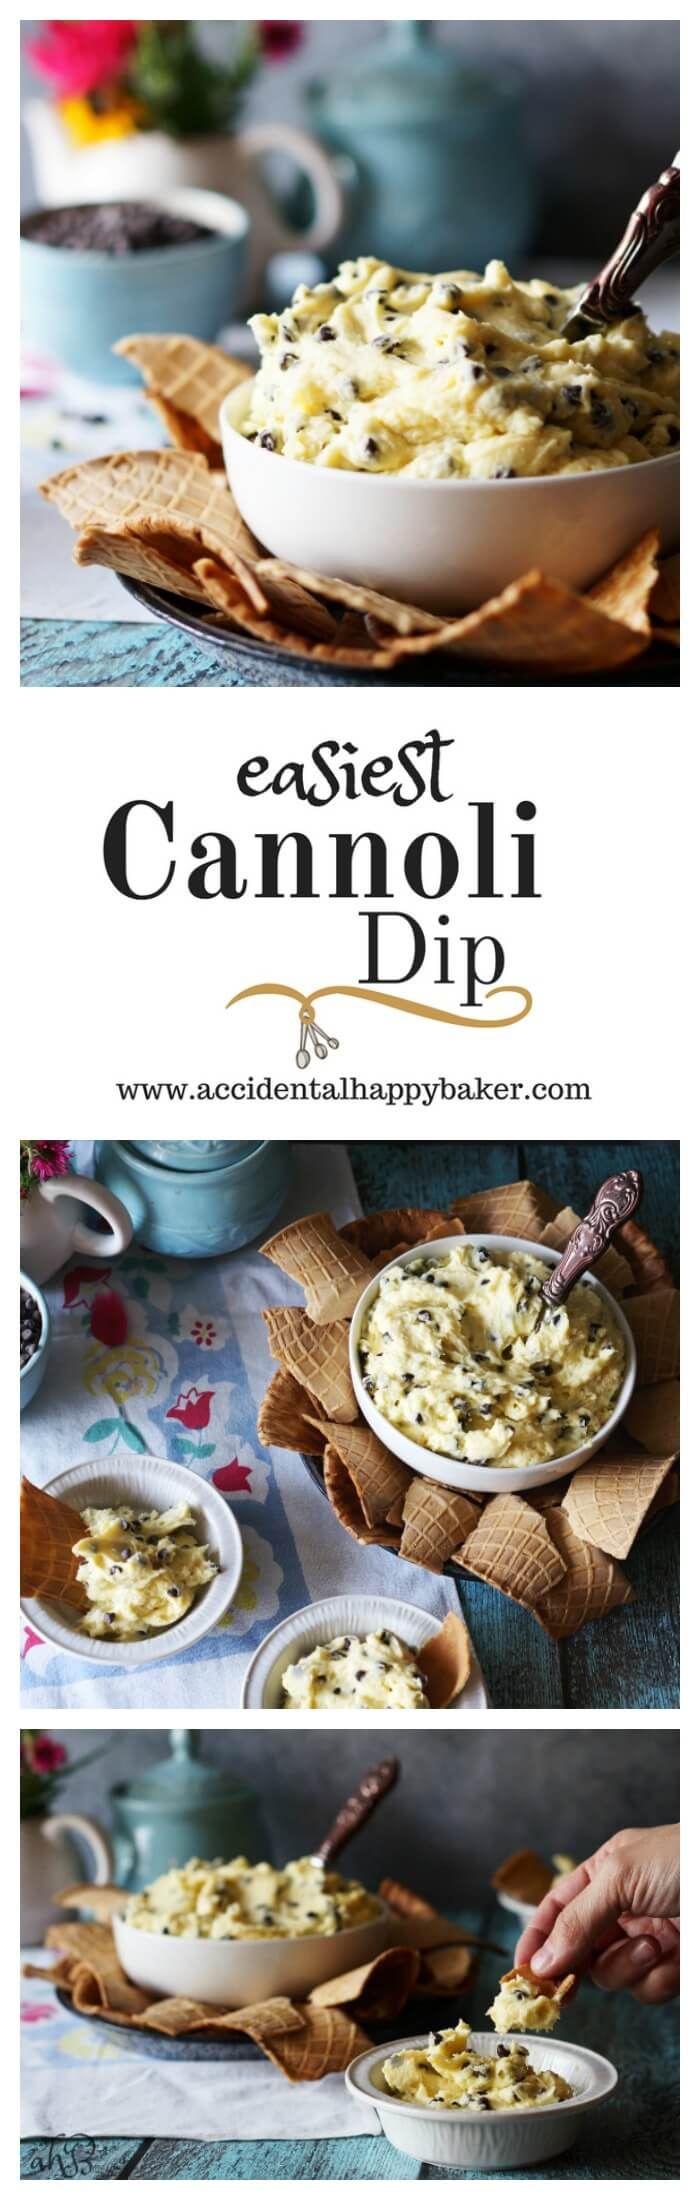 Cannoli Dip,This easy cannoli dip tastes like classic cannoli, goes together in just a few minutes and makes a great gluten free party option.